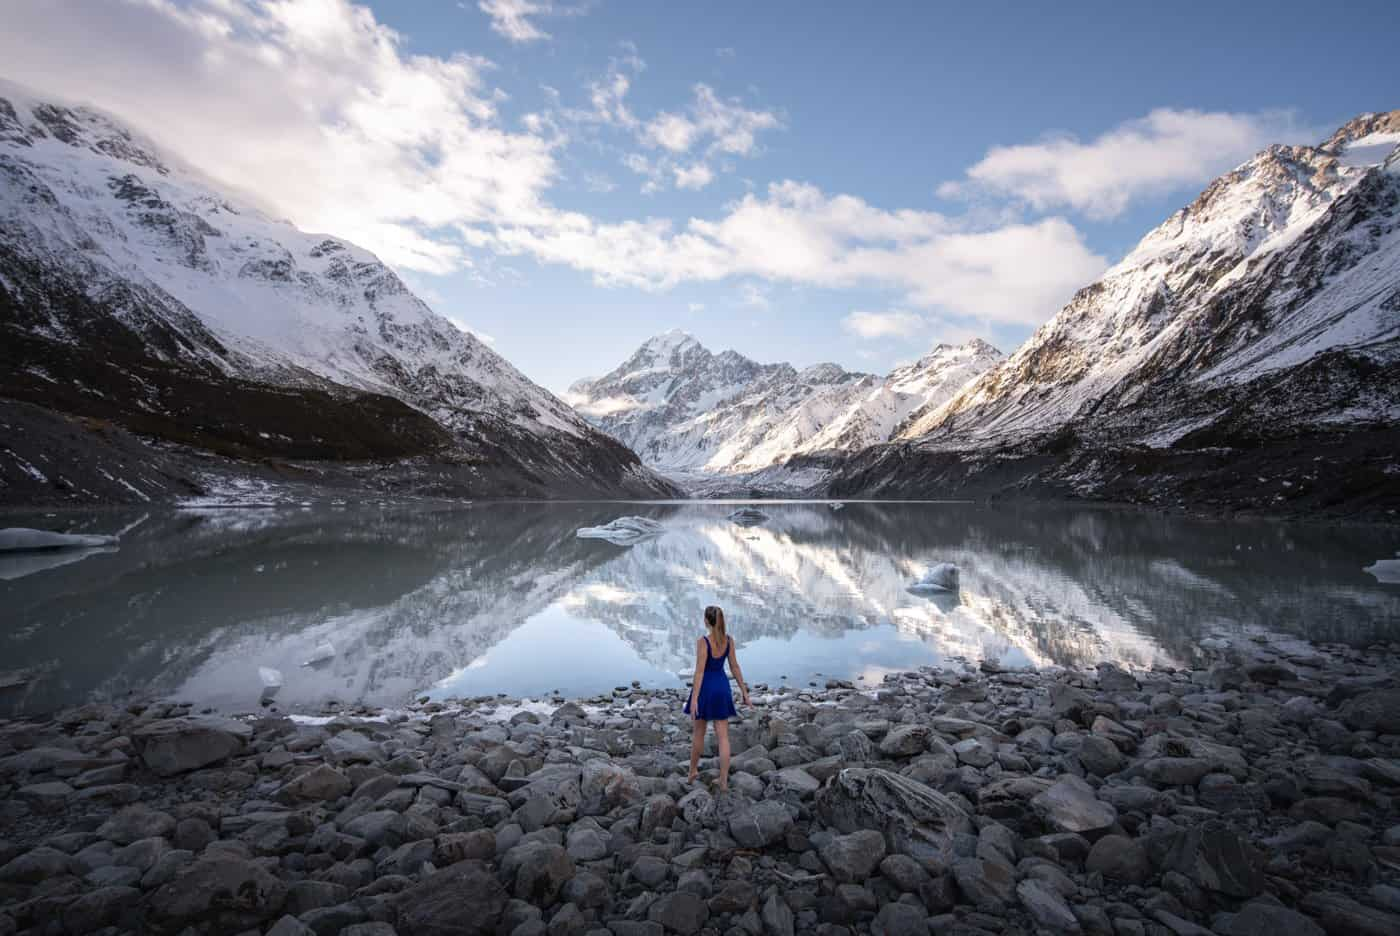 You should definitely include Mt Cook / Aoraki NP in your 7 day New Zealand South Island itinerary if the weather cooperates!